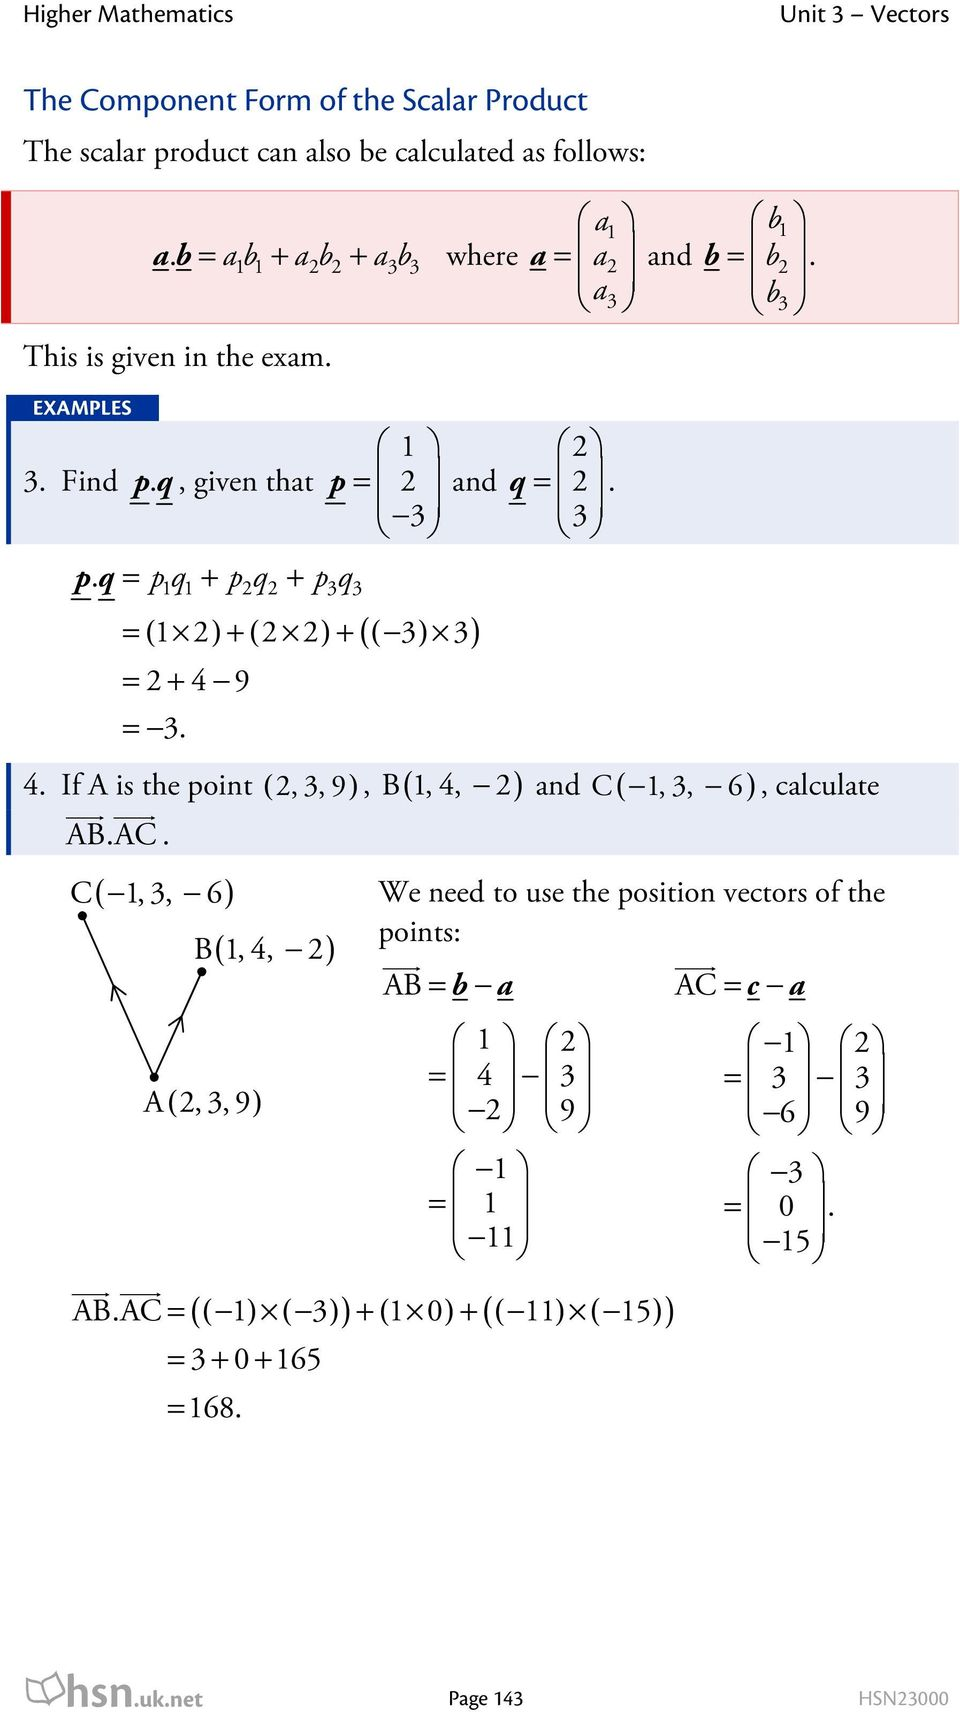 and ( ) + ( ) + ( ) + 9 If A is th point ABAC C(,, ) B(,, ) A (,, 9) q,, 9, B(,, ) and C(,, ), calculat W nd